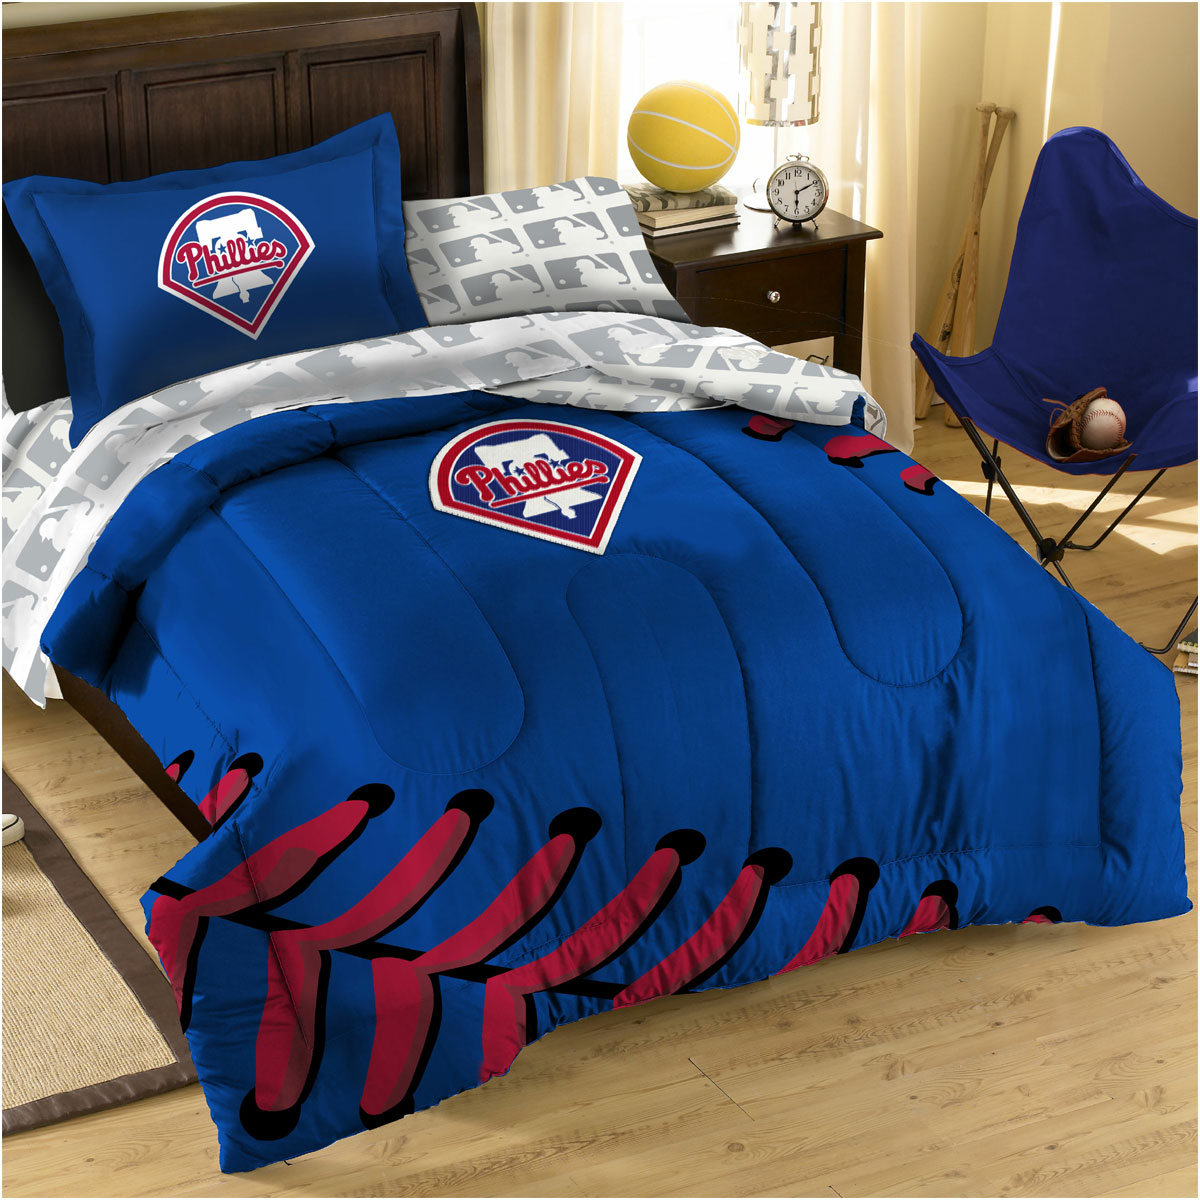 Red Sox Bed Sheets Queen